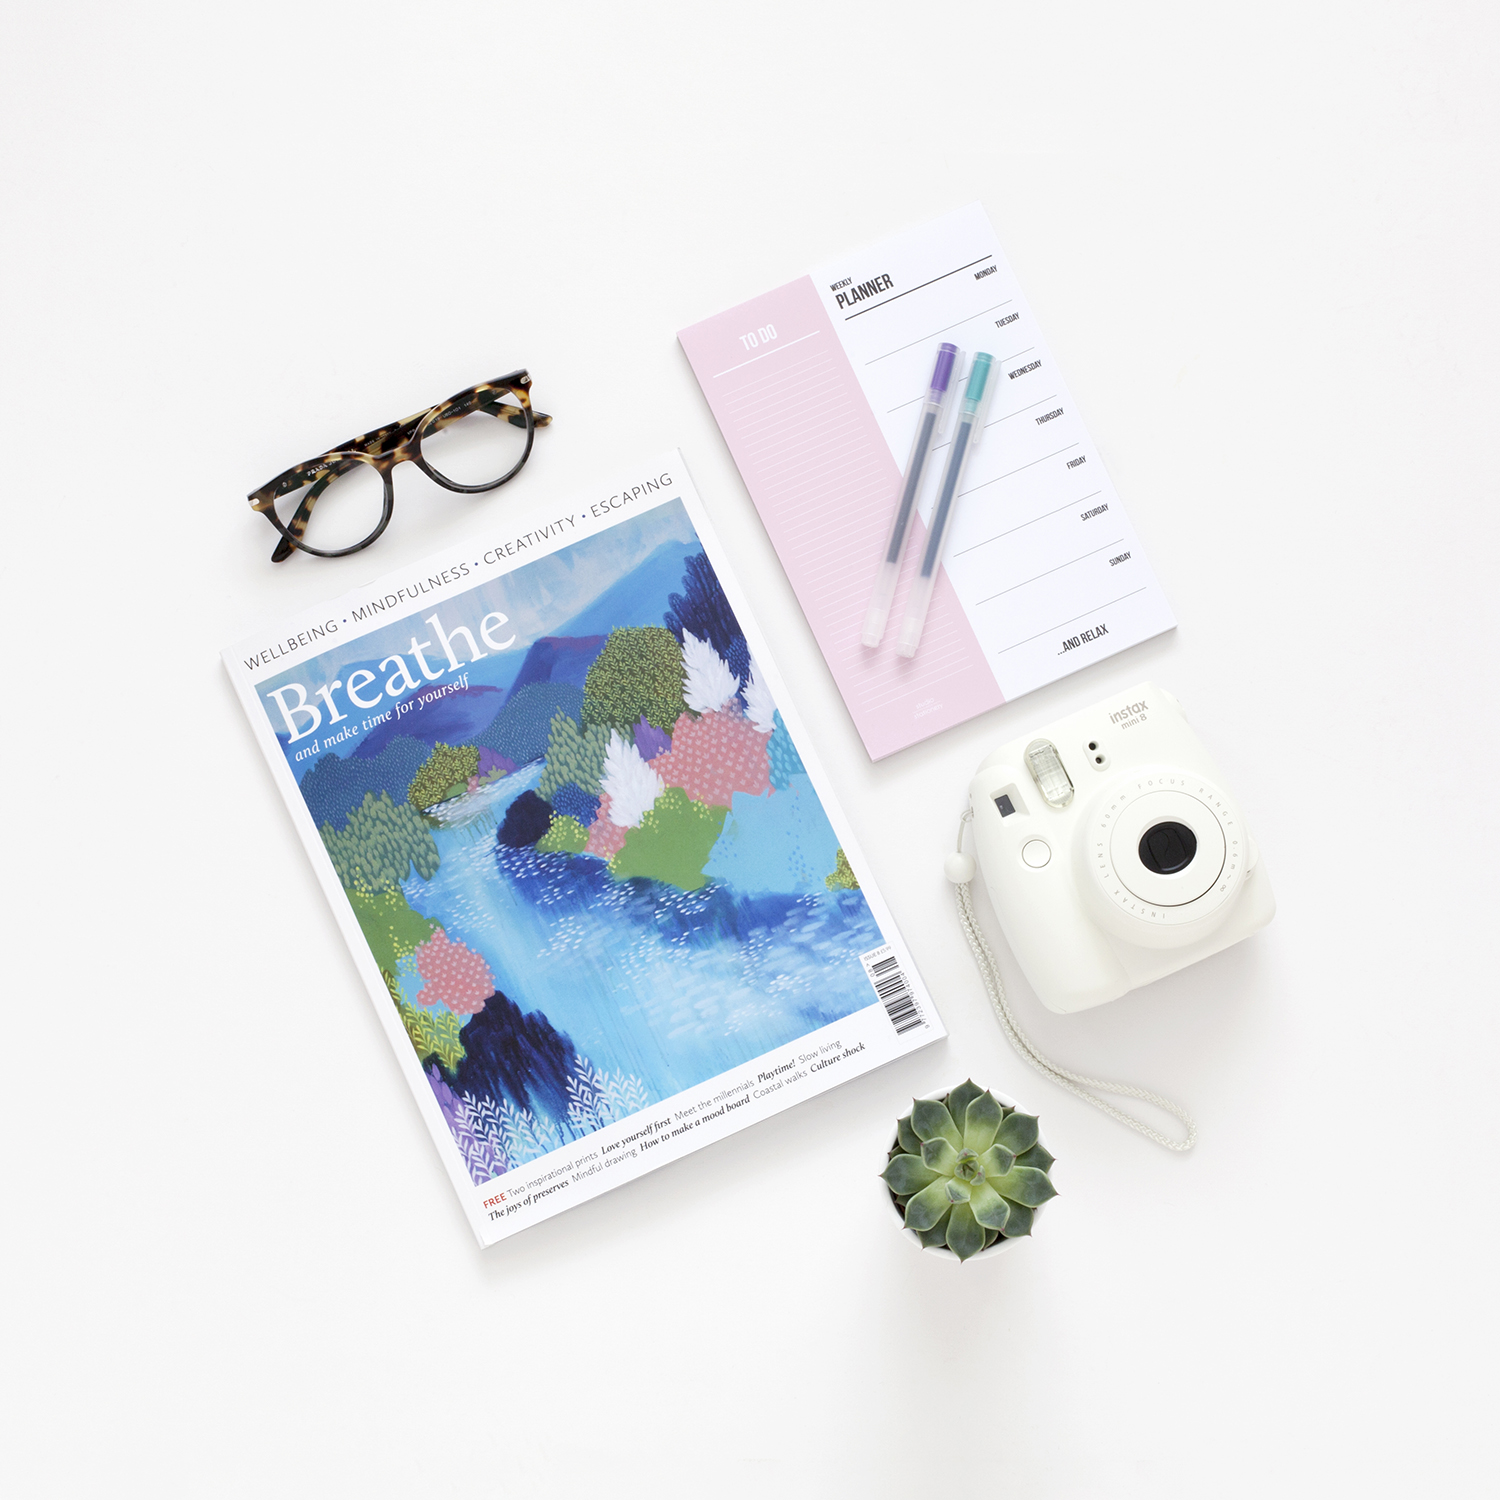 How to Utilise Your Life Experience and Transferable Skills | Photo of a magazine, to-do list and pens | natashadenness.co.uk